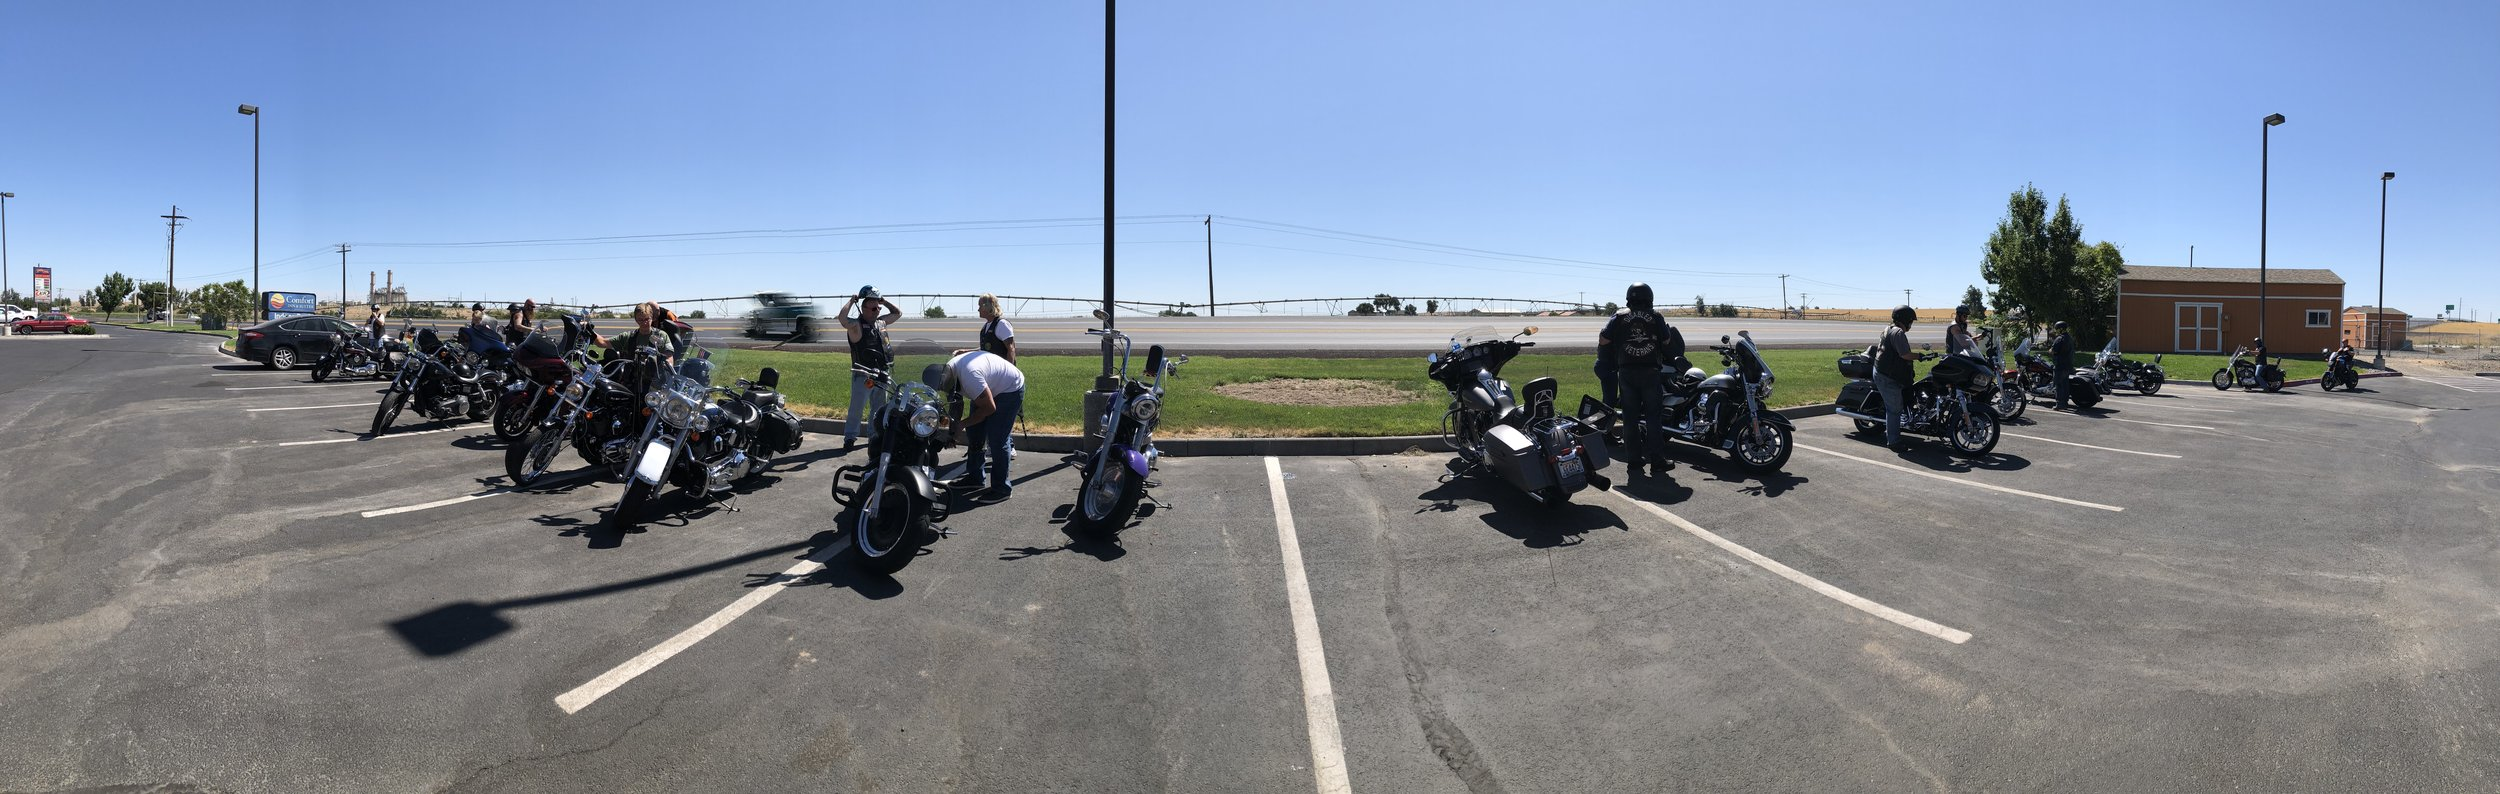 Pendelton Bike Week